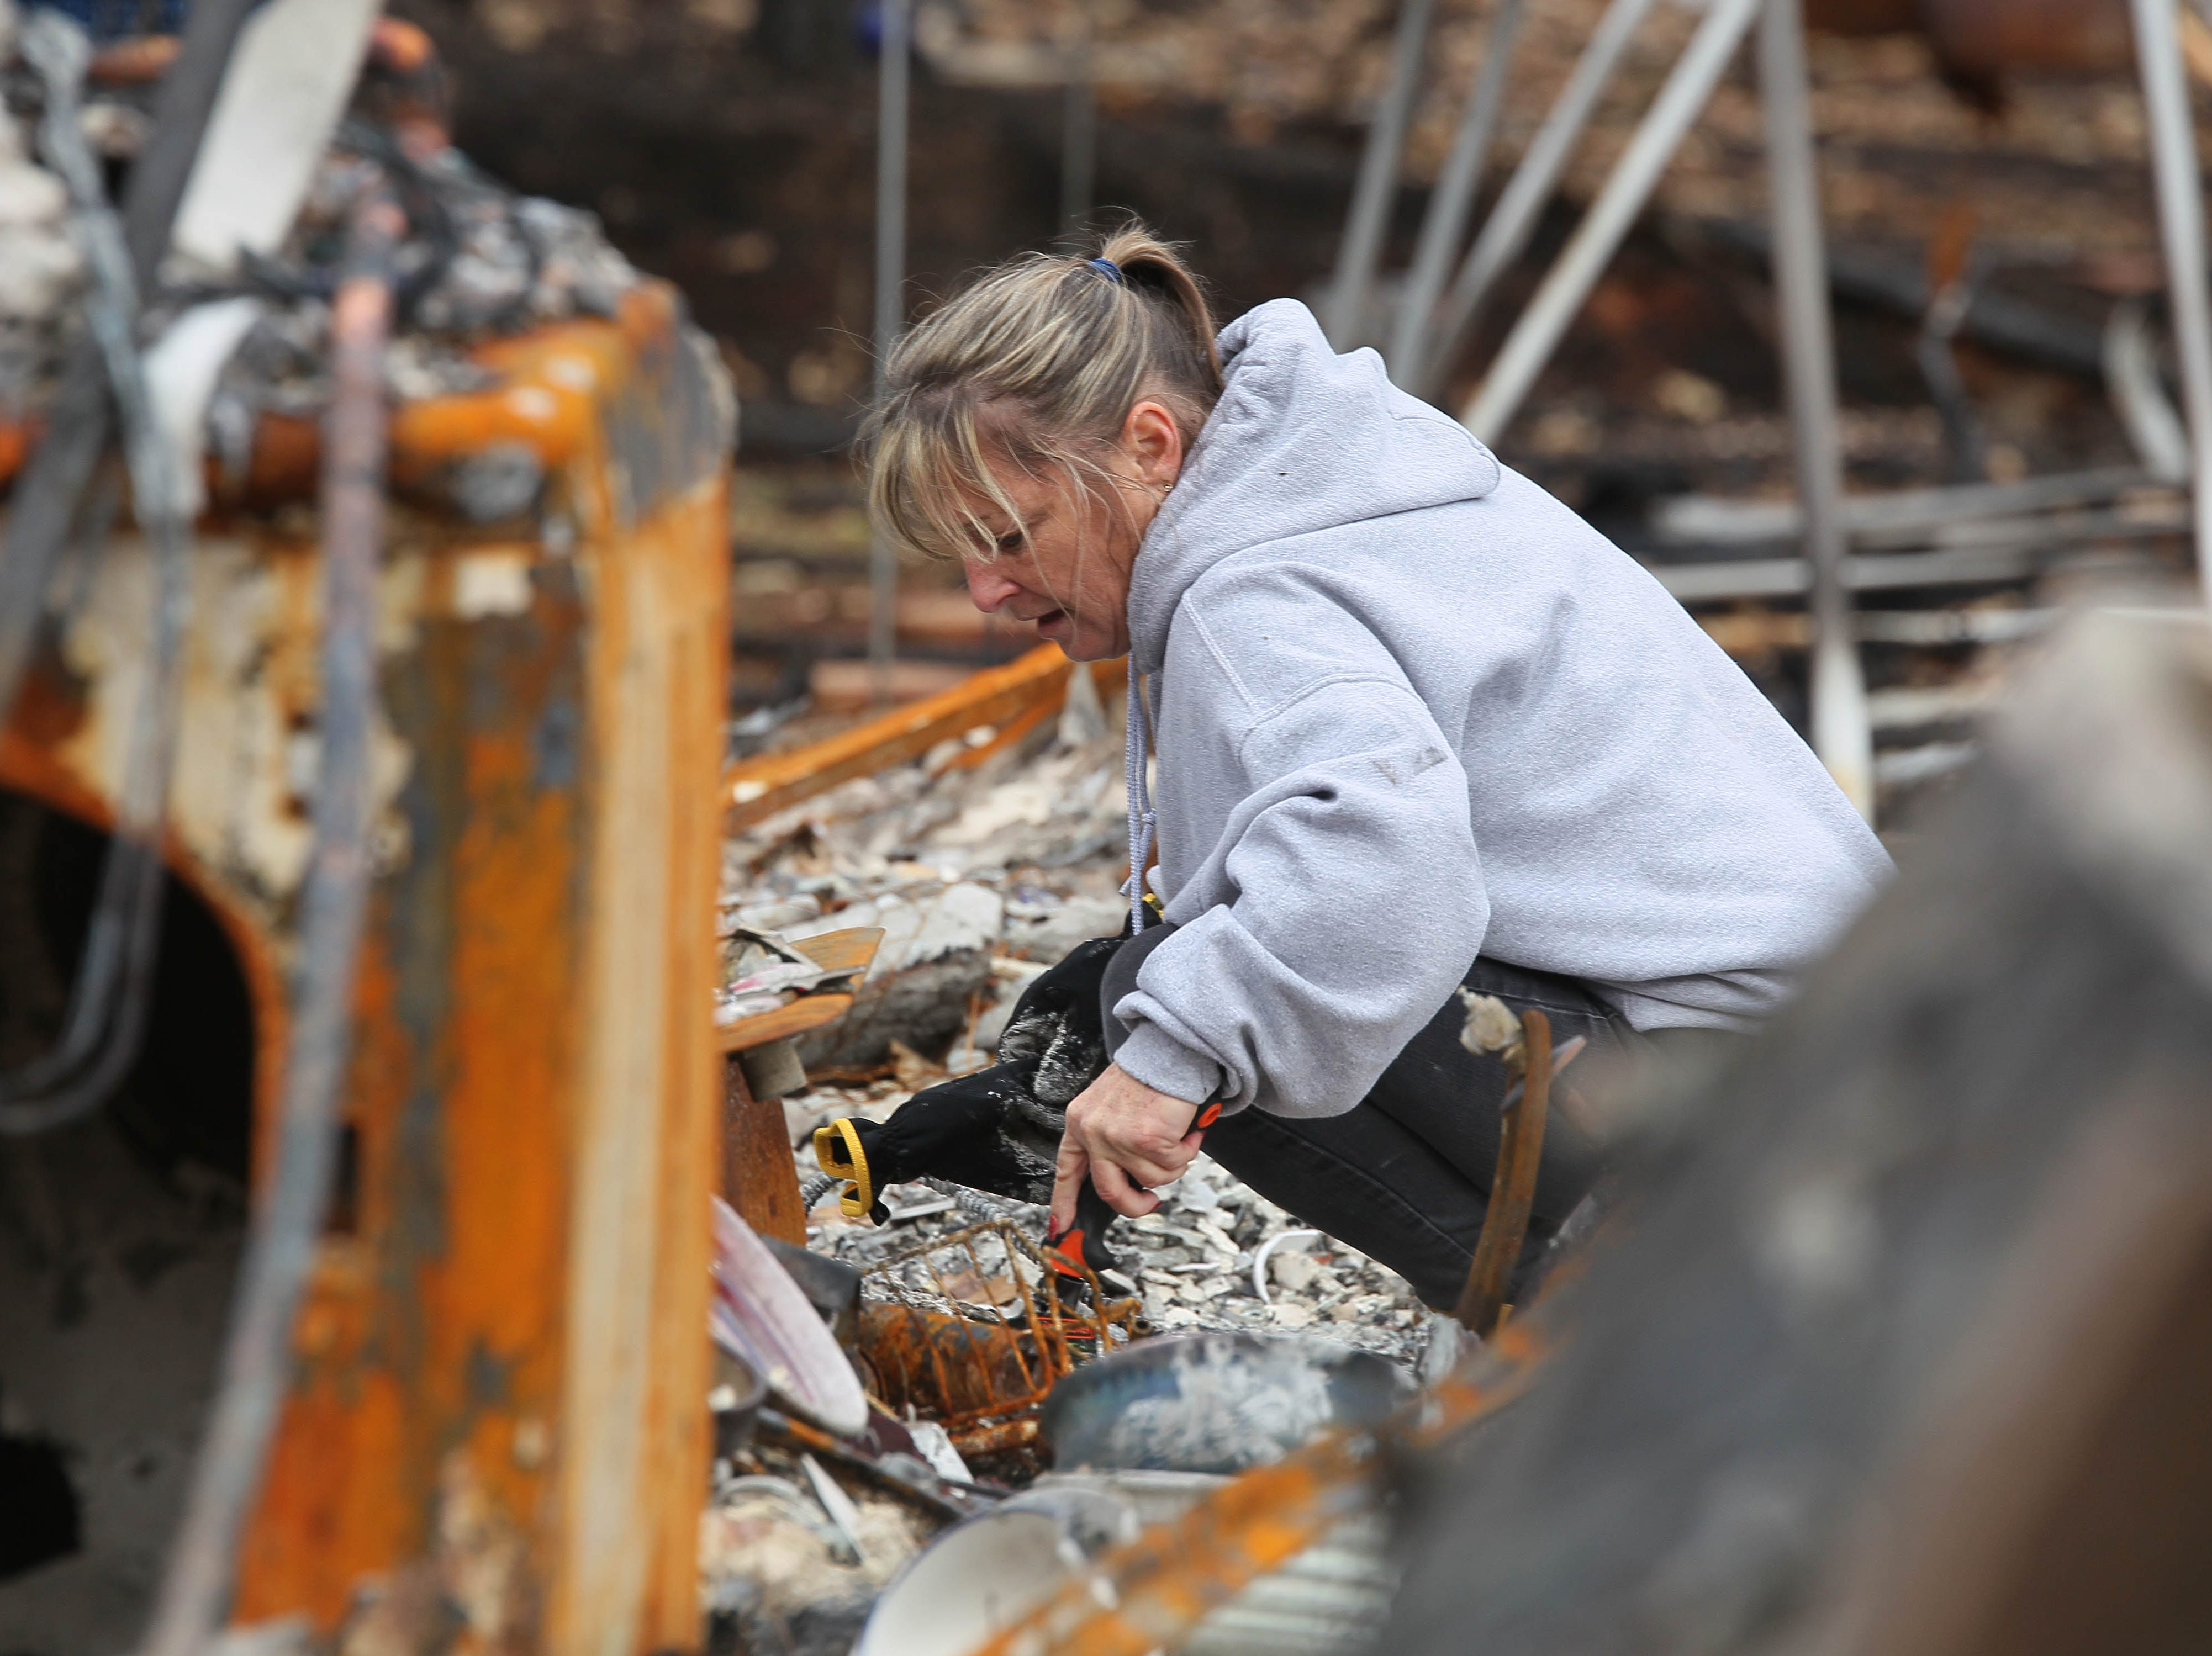 Tina Torres sifts through her burned Paradise home for any salvageable items. Tuesday was the first day she and other residents were allowed to return to their home sites since they were evacuated during the Camp Fire on Nov. 8, 2018.